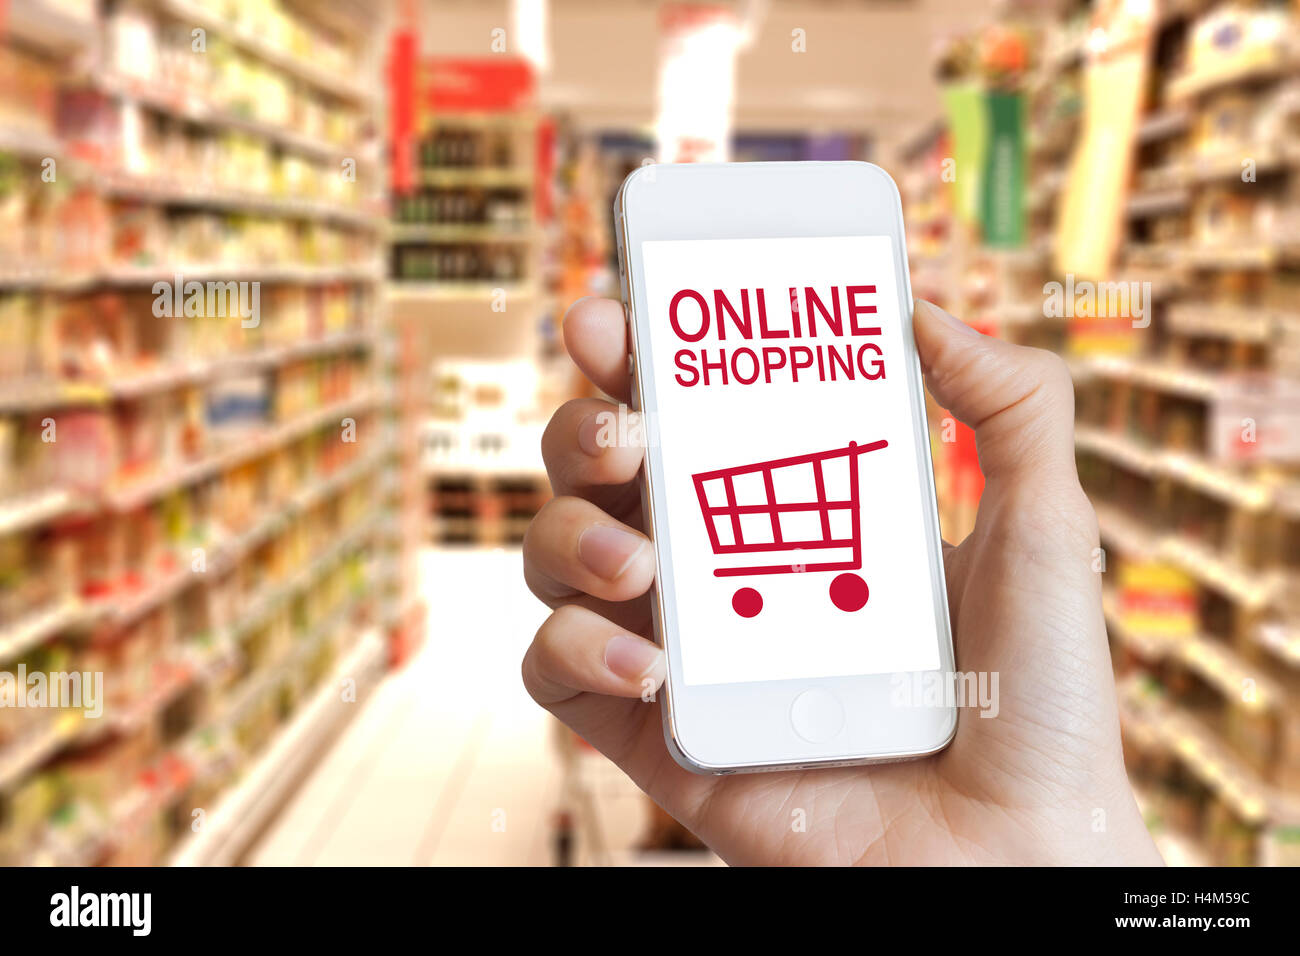 In Shop Online Store Online Shopping Application On Mobile Phone Screen With Grocery